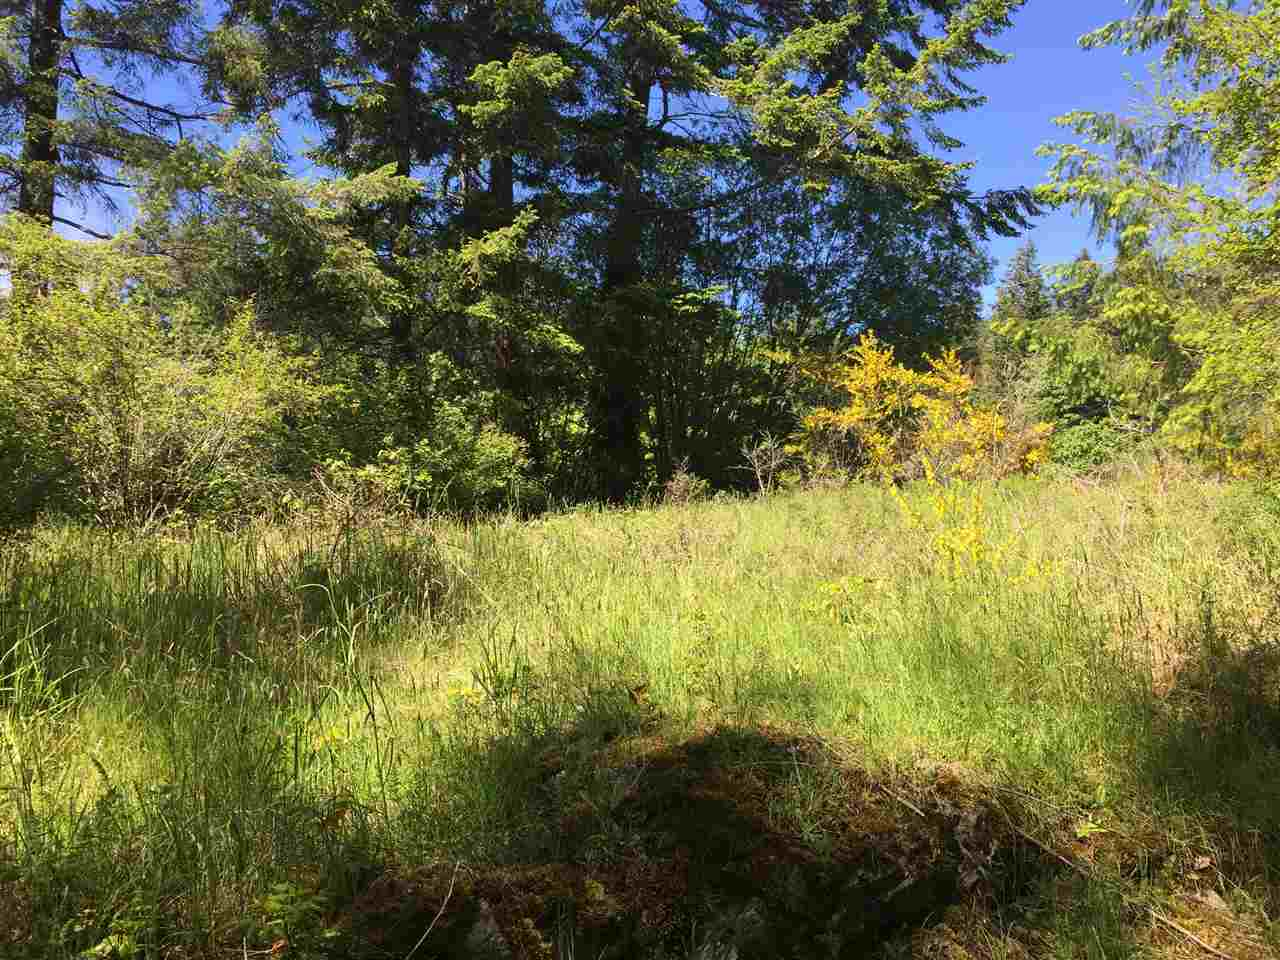 Photo 5: Photos: LOT 1 SEA OTTER ROAD in Pender Harbour: Pender Harbour Egmont Home for sale (Sunshine Coast)  : MLS® # R2088645